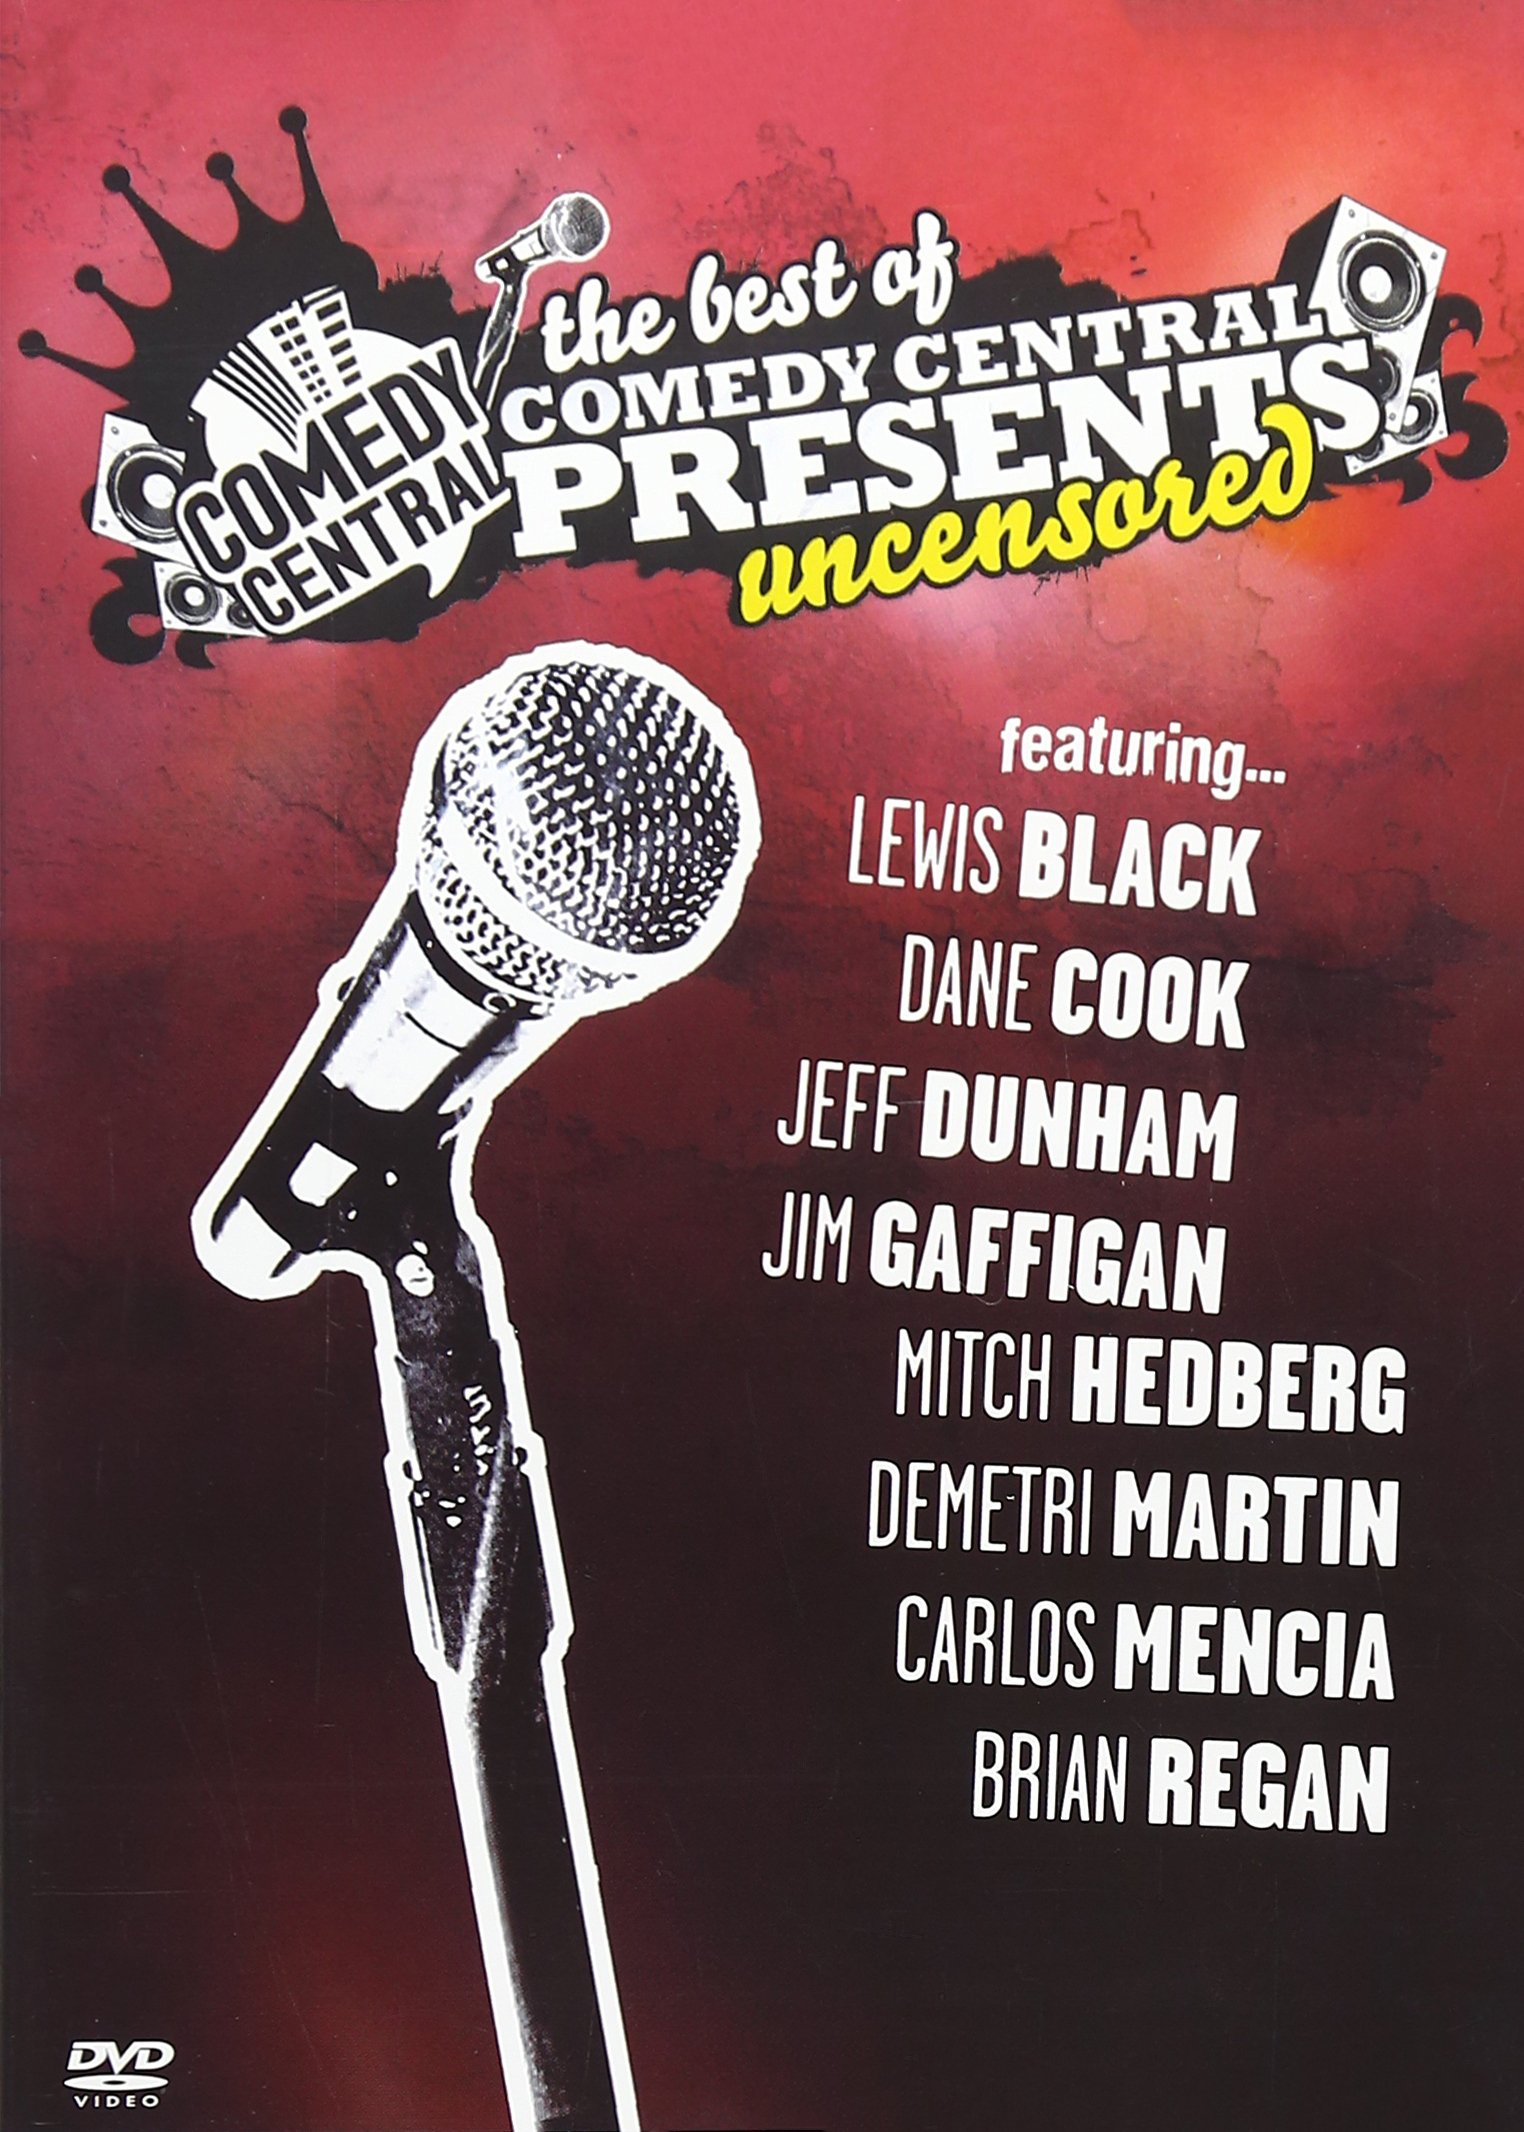 The Best of Comedy Central Presents: Uncensored